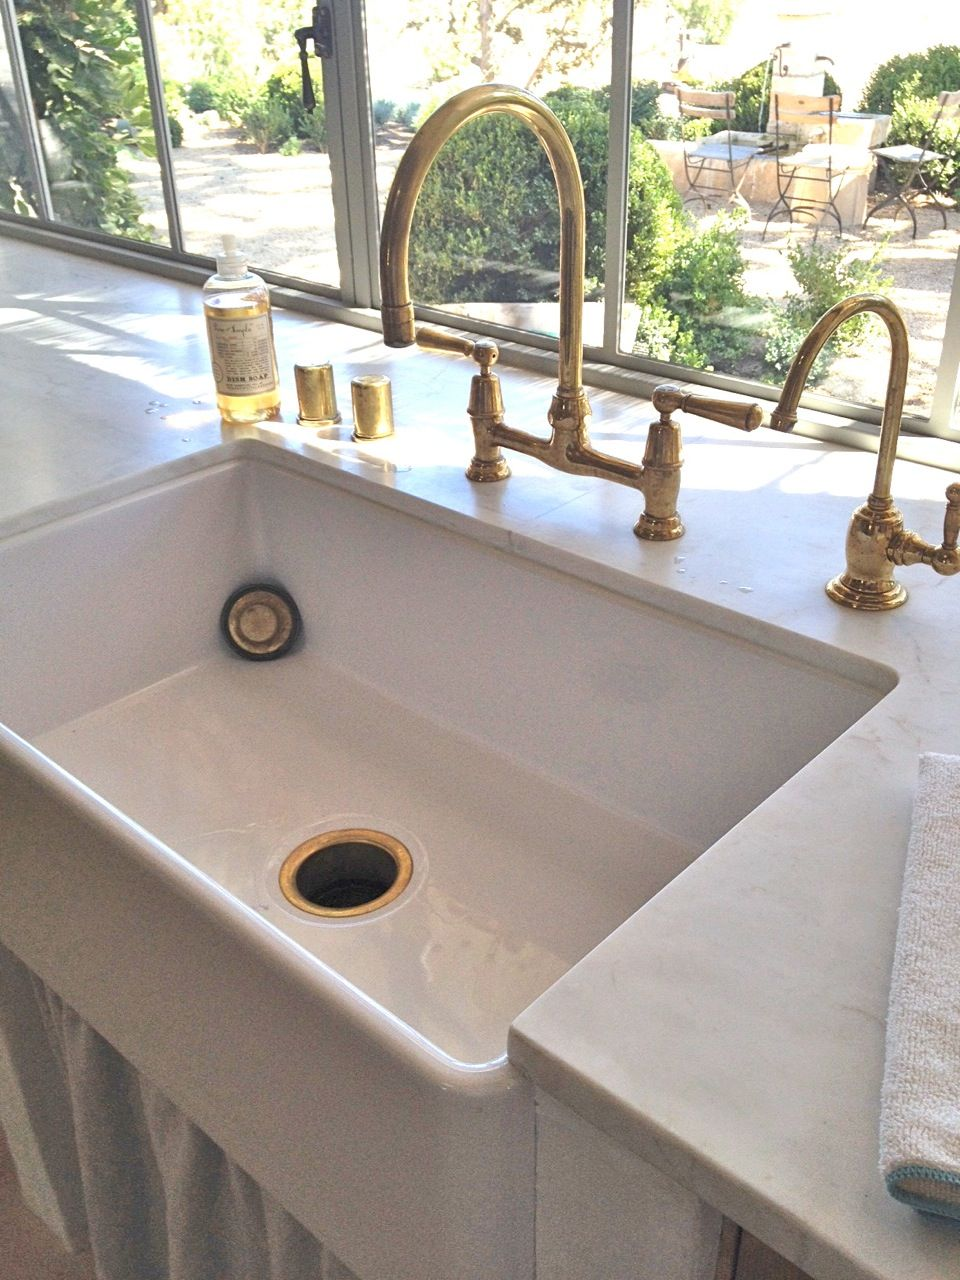 unlacquered brass kitchen faucet Related image Brass TapBrushed Brass FaucetKitchen